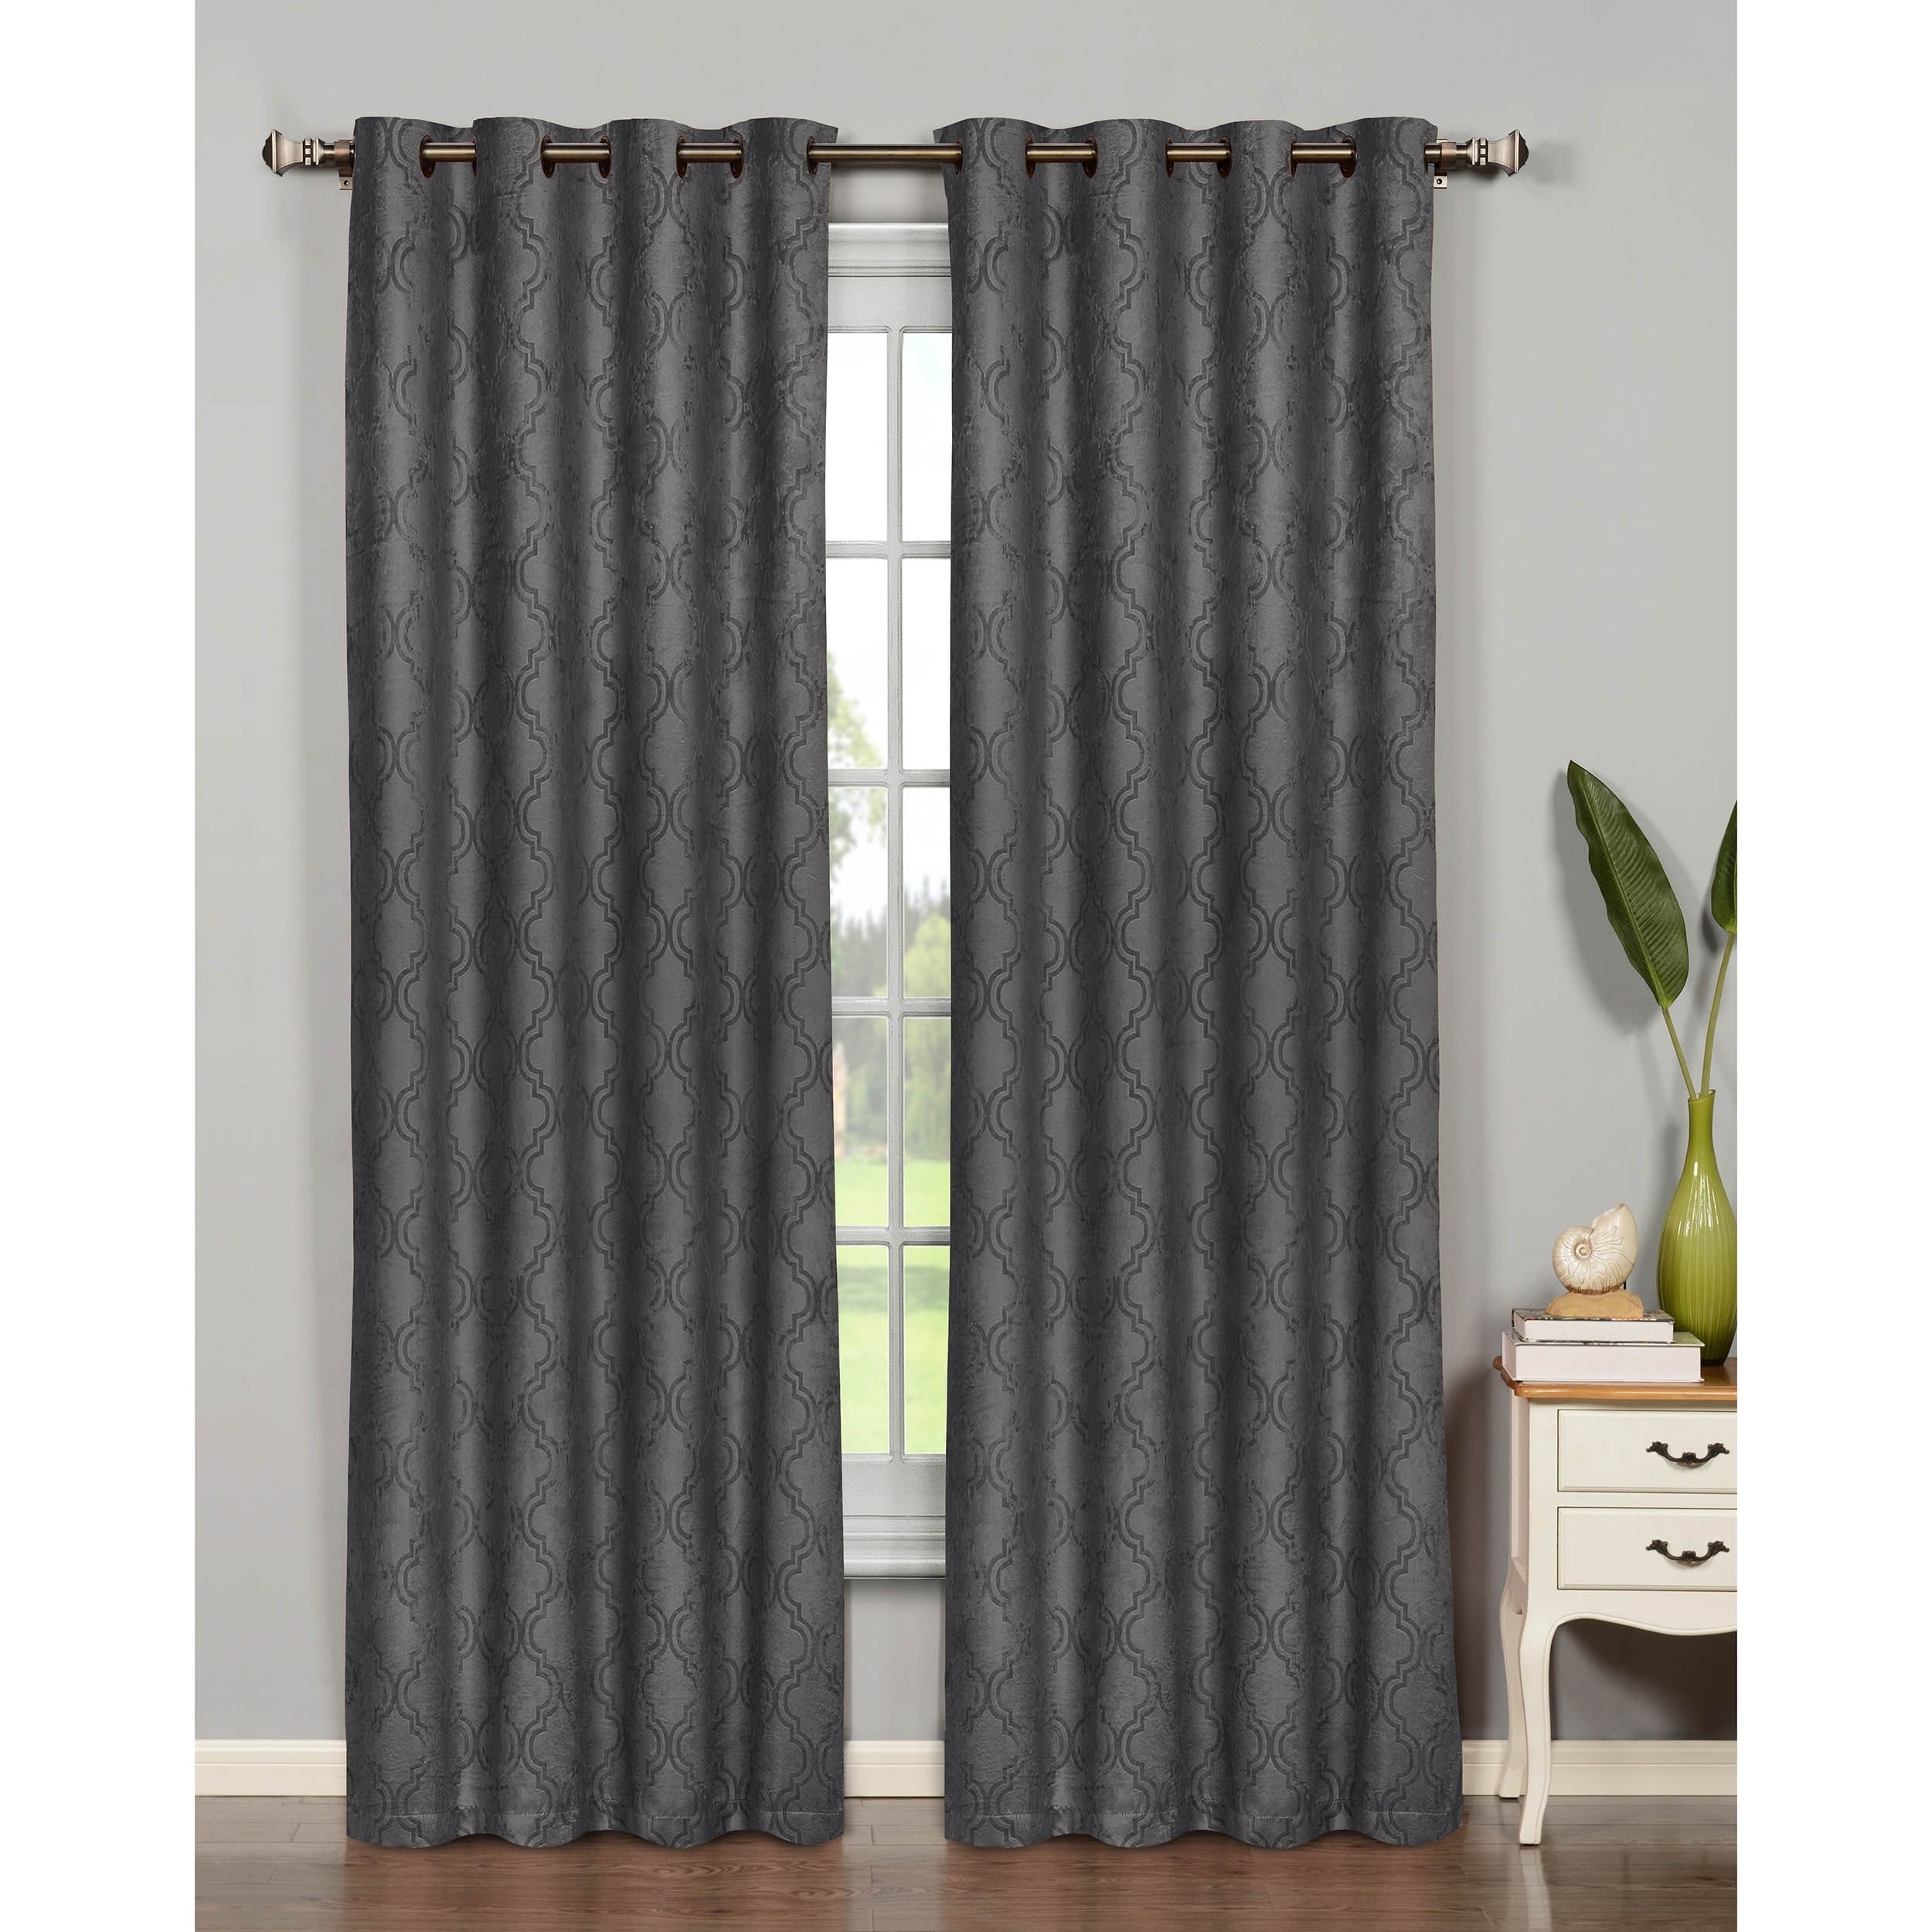 newbury lattice curtain x with free inch grey drapes home product darkening today grommet room pair shipping overstock panel garden luna grommets bella